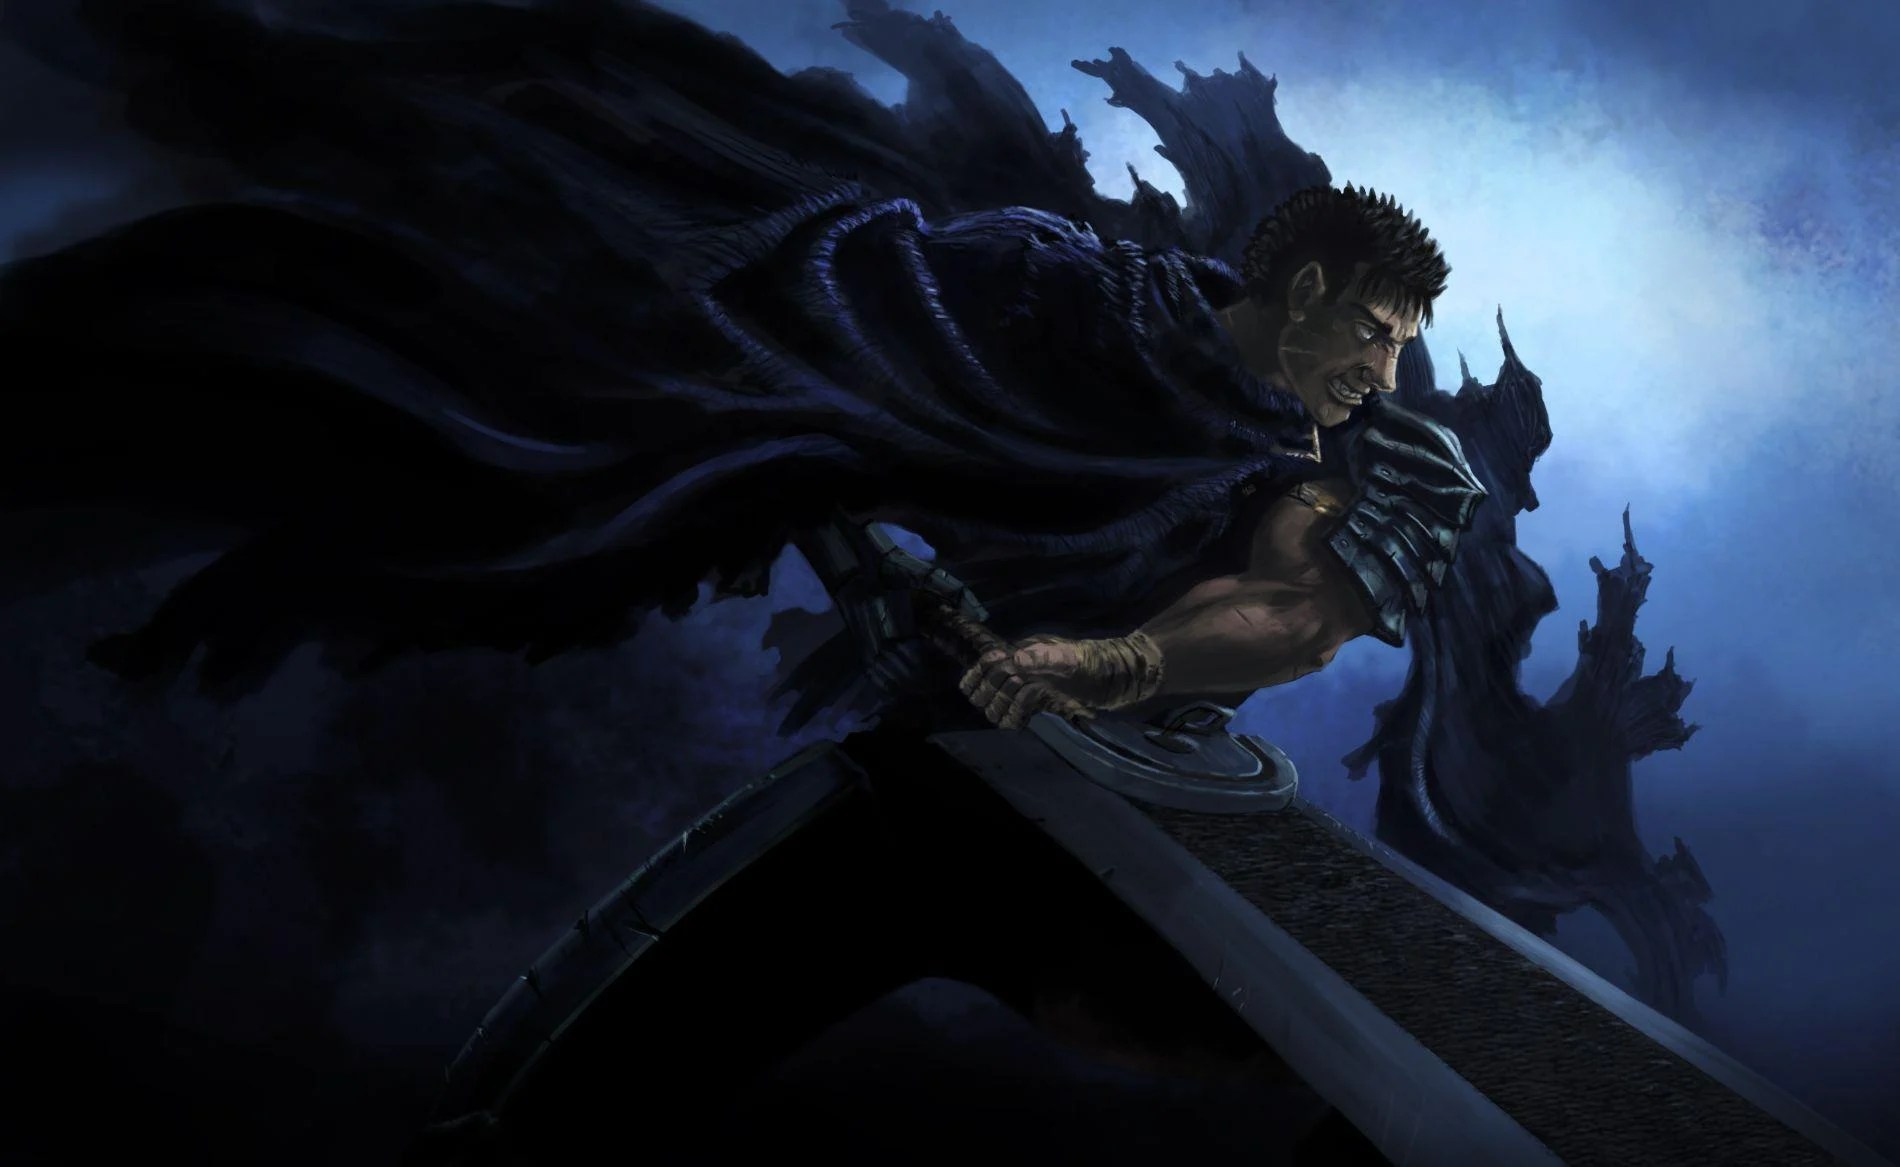 Berserk Iphone Wallpaper Berserk 2016 Wallpapers Wallpaper Cave